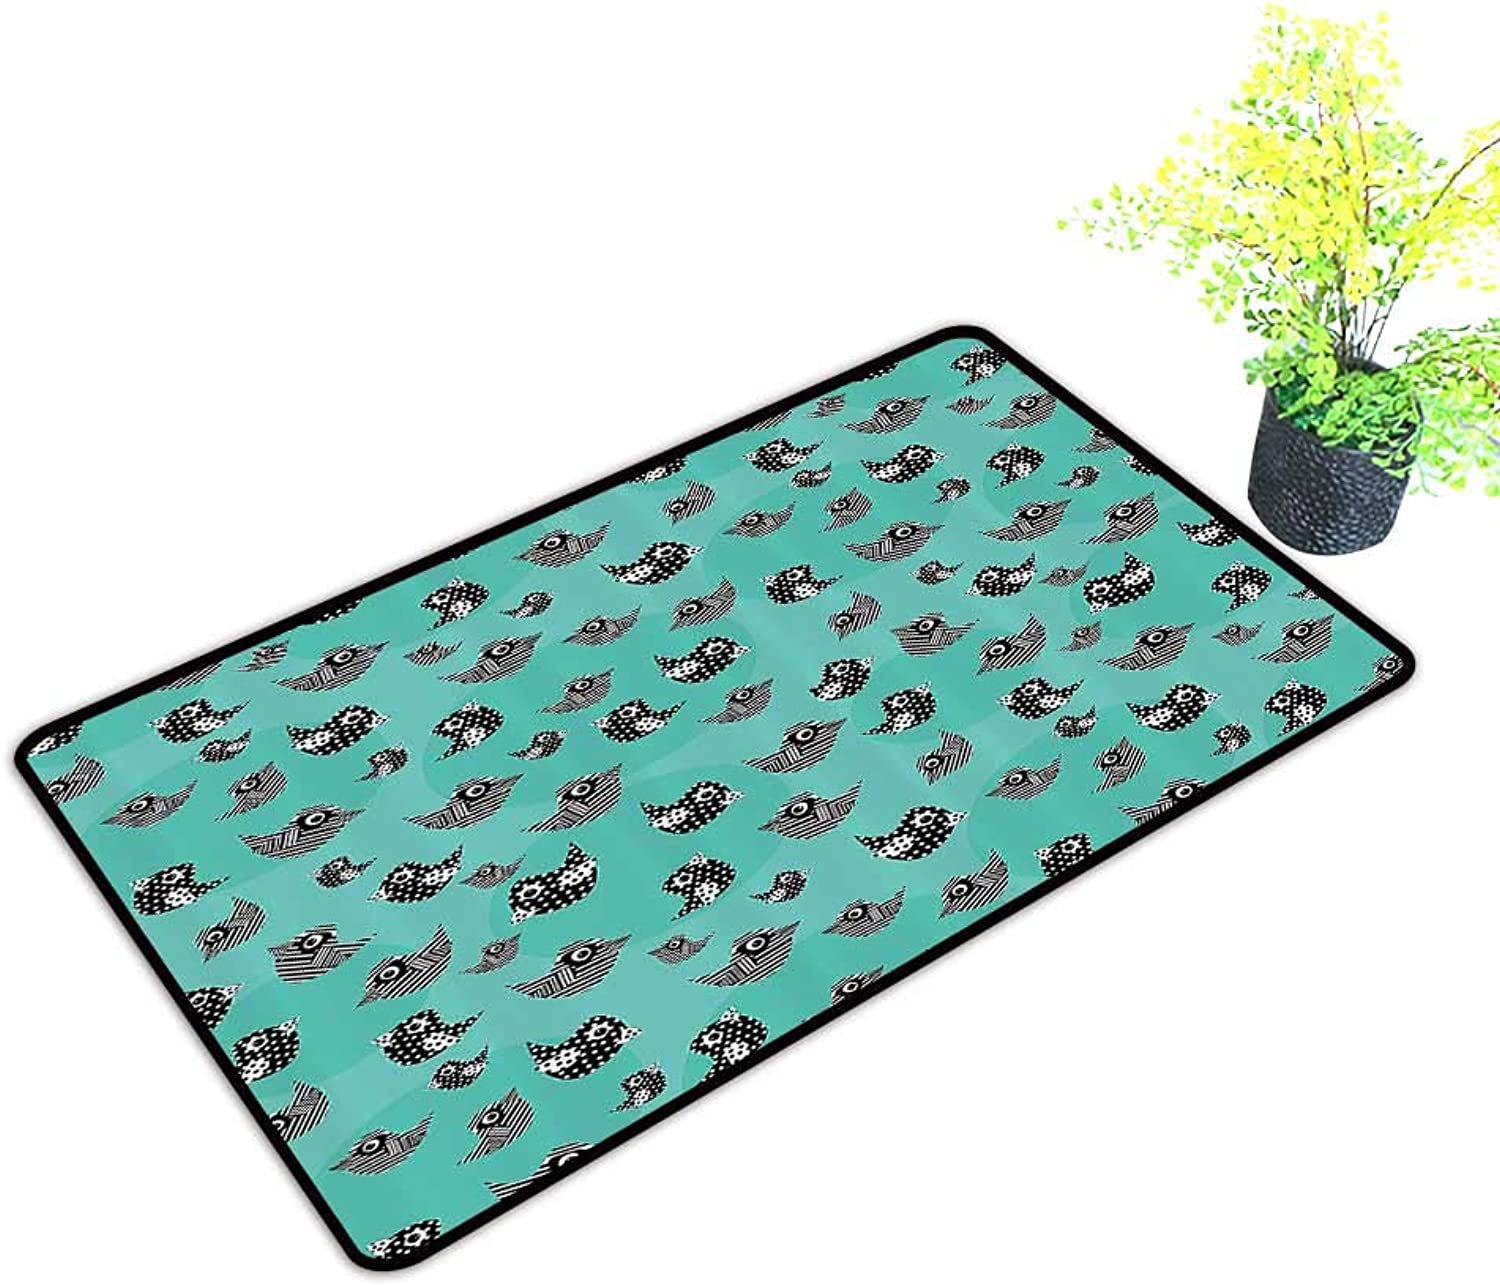 Gmnalahome Large Door Mats shoes Scraper attern of Flying Cute Birds Striped Paper Cut DIY Springtime Romantic Use for Front Door Entrance W39 x H19 INCH